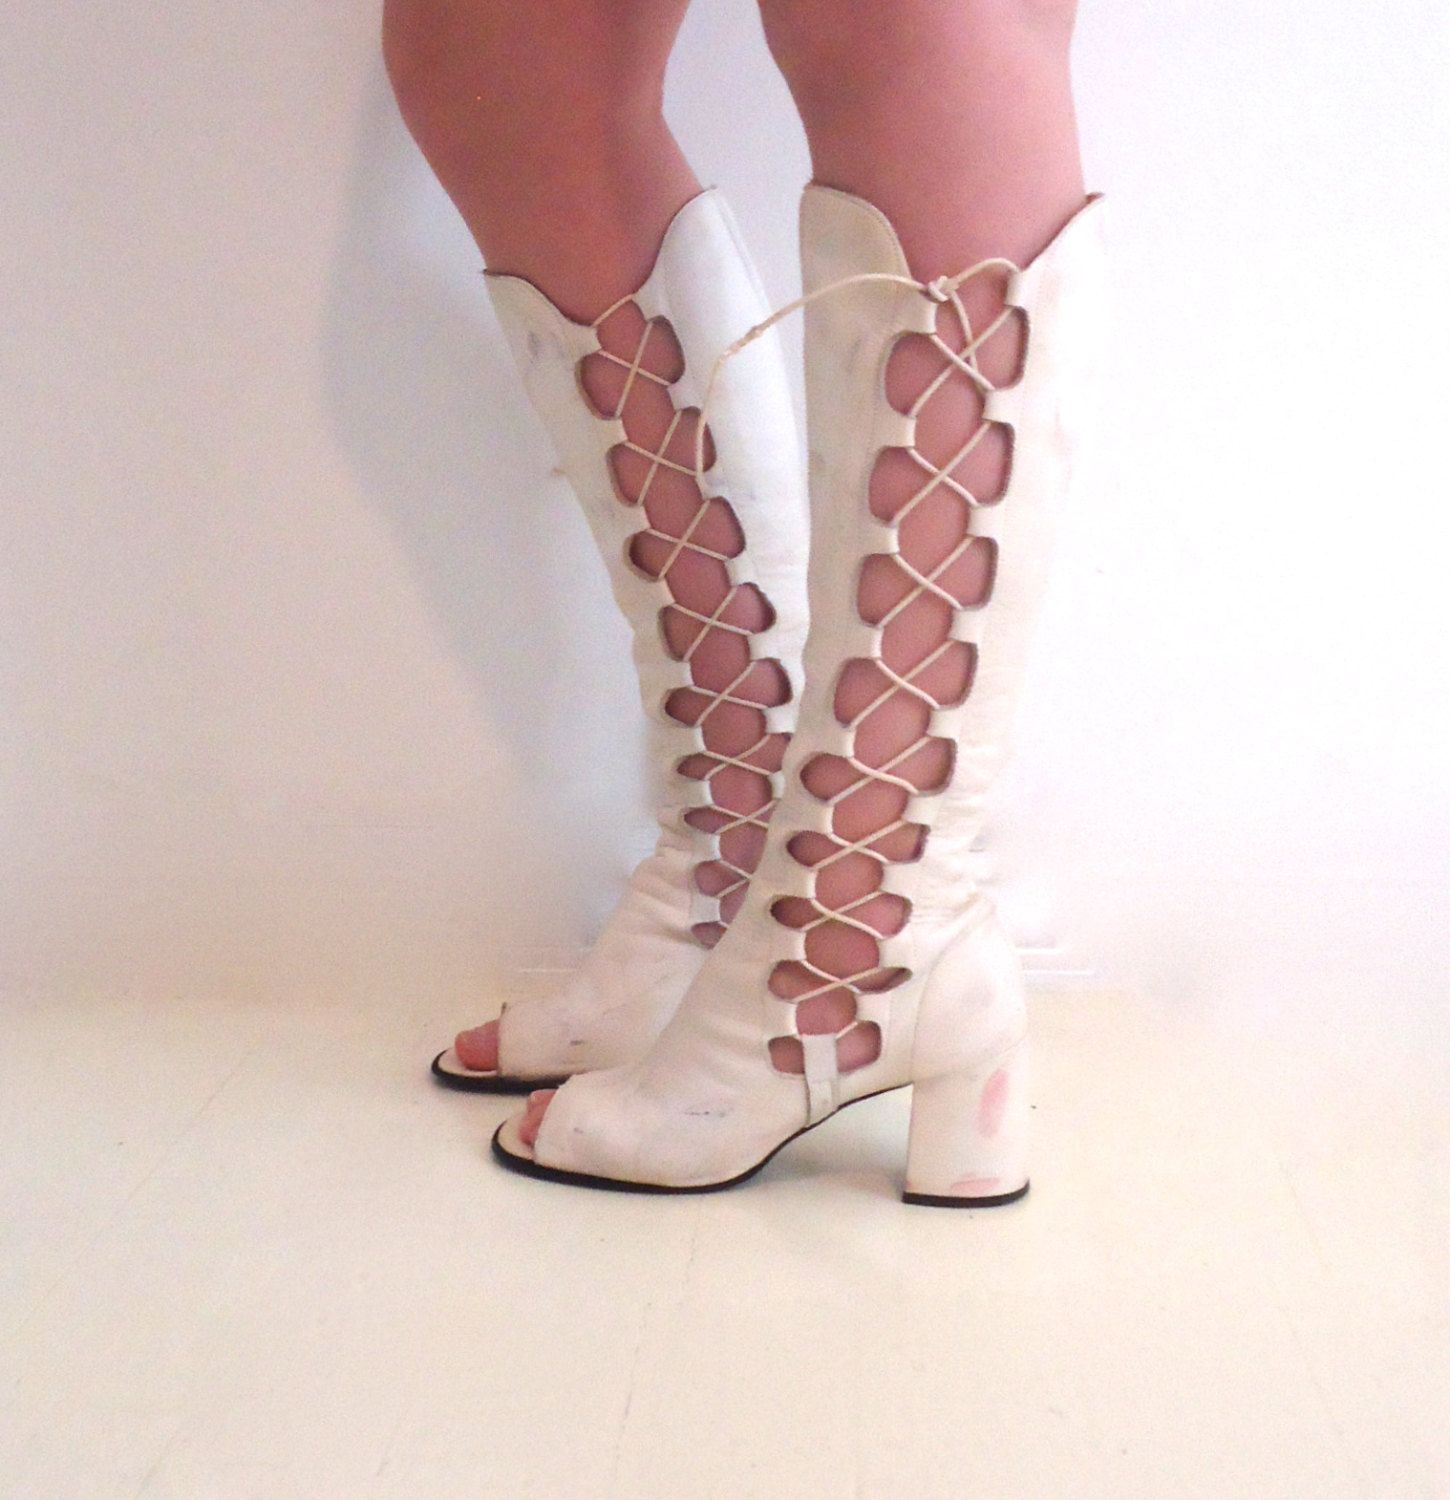 476a74d3326 Vintage 60's Gladiator Go-go Boots White Leather Knee High Lace Up ...